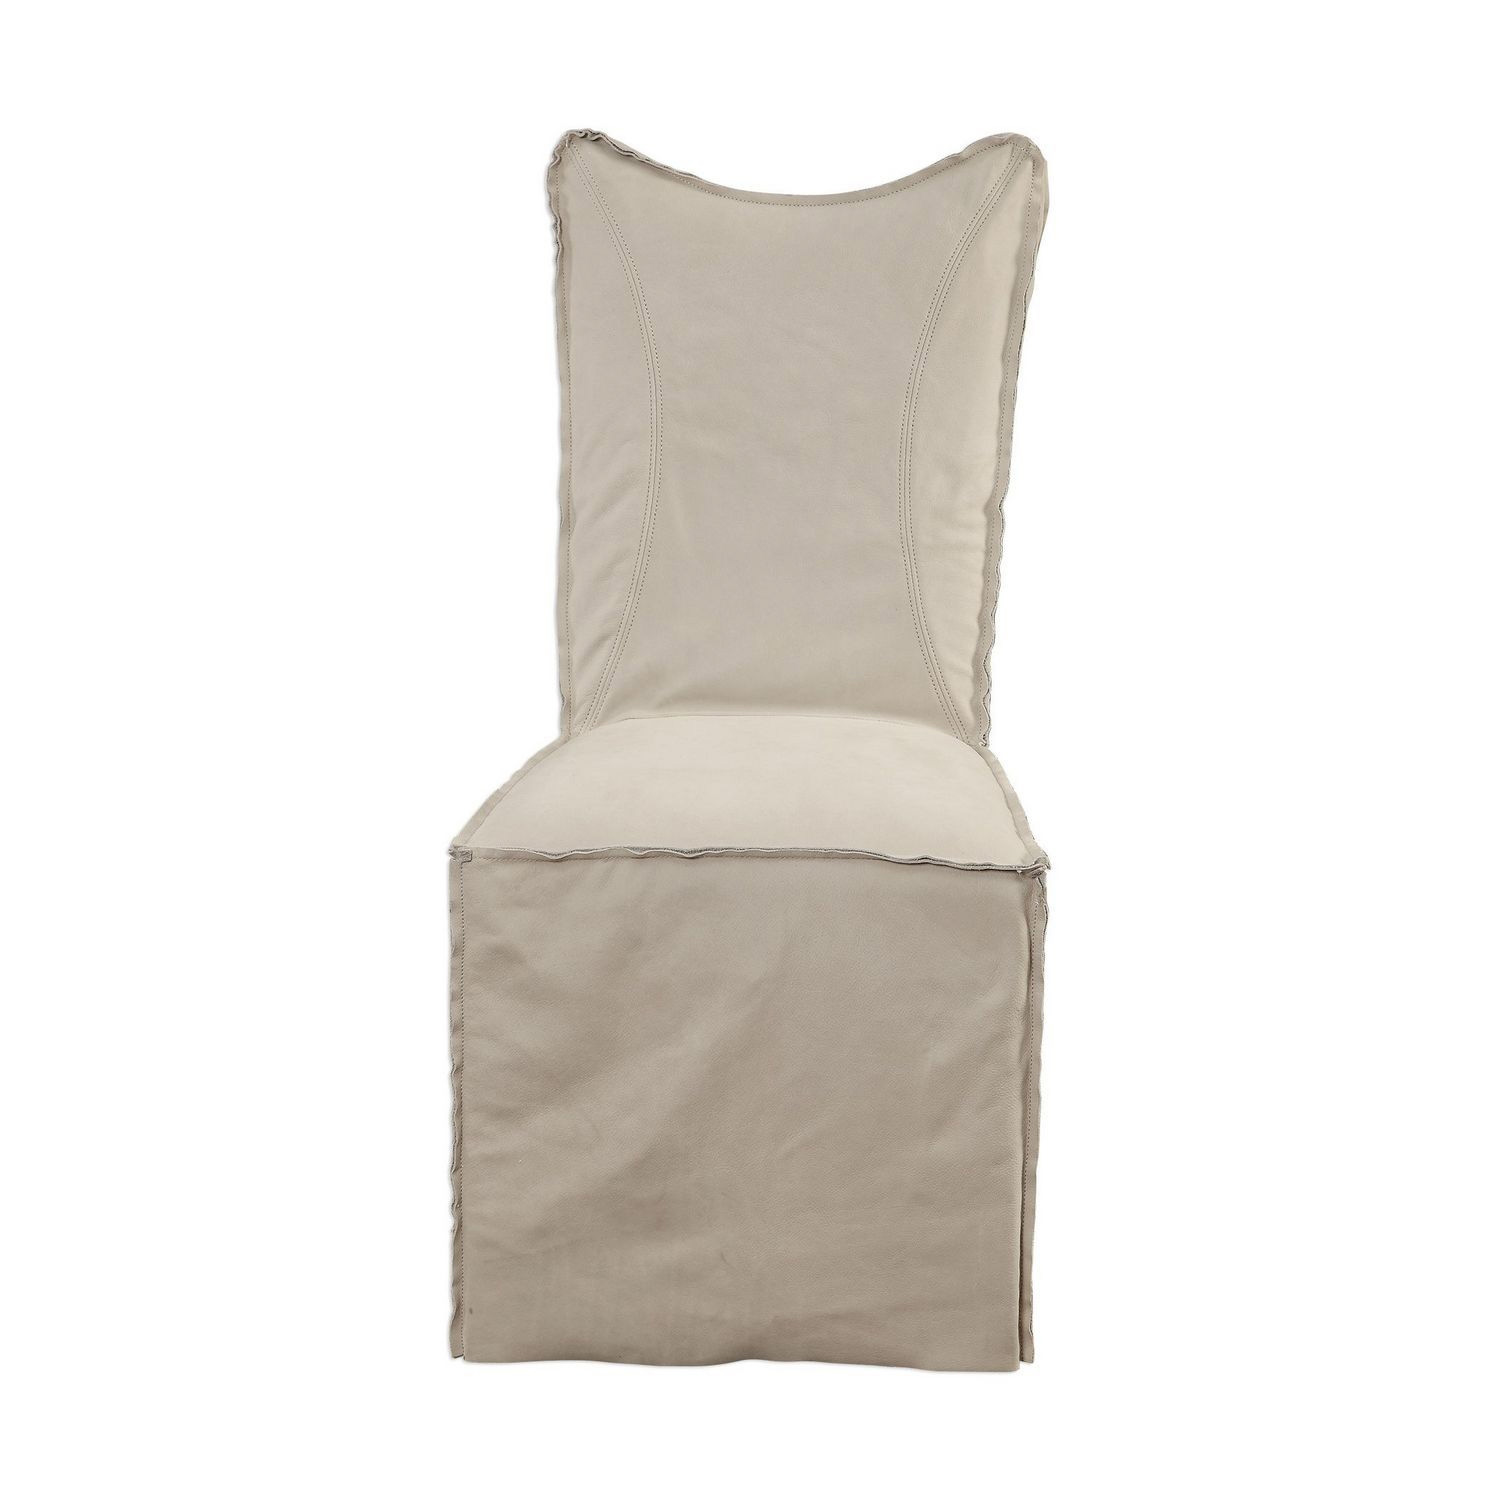 Uttermost Delroy Armless Chairs - Set of 2 - Stone Ivory